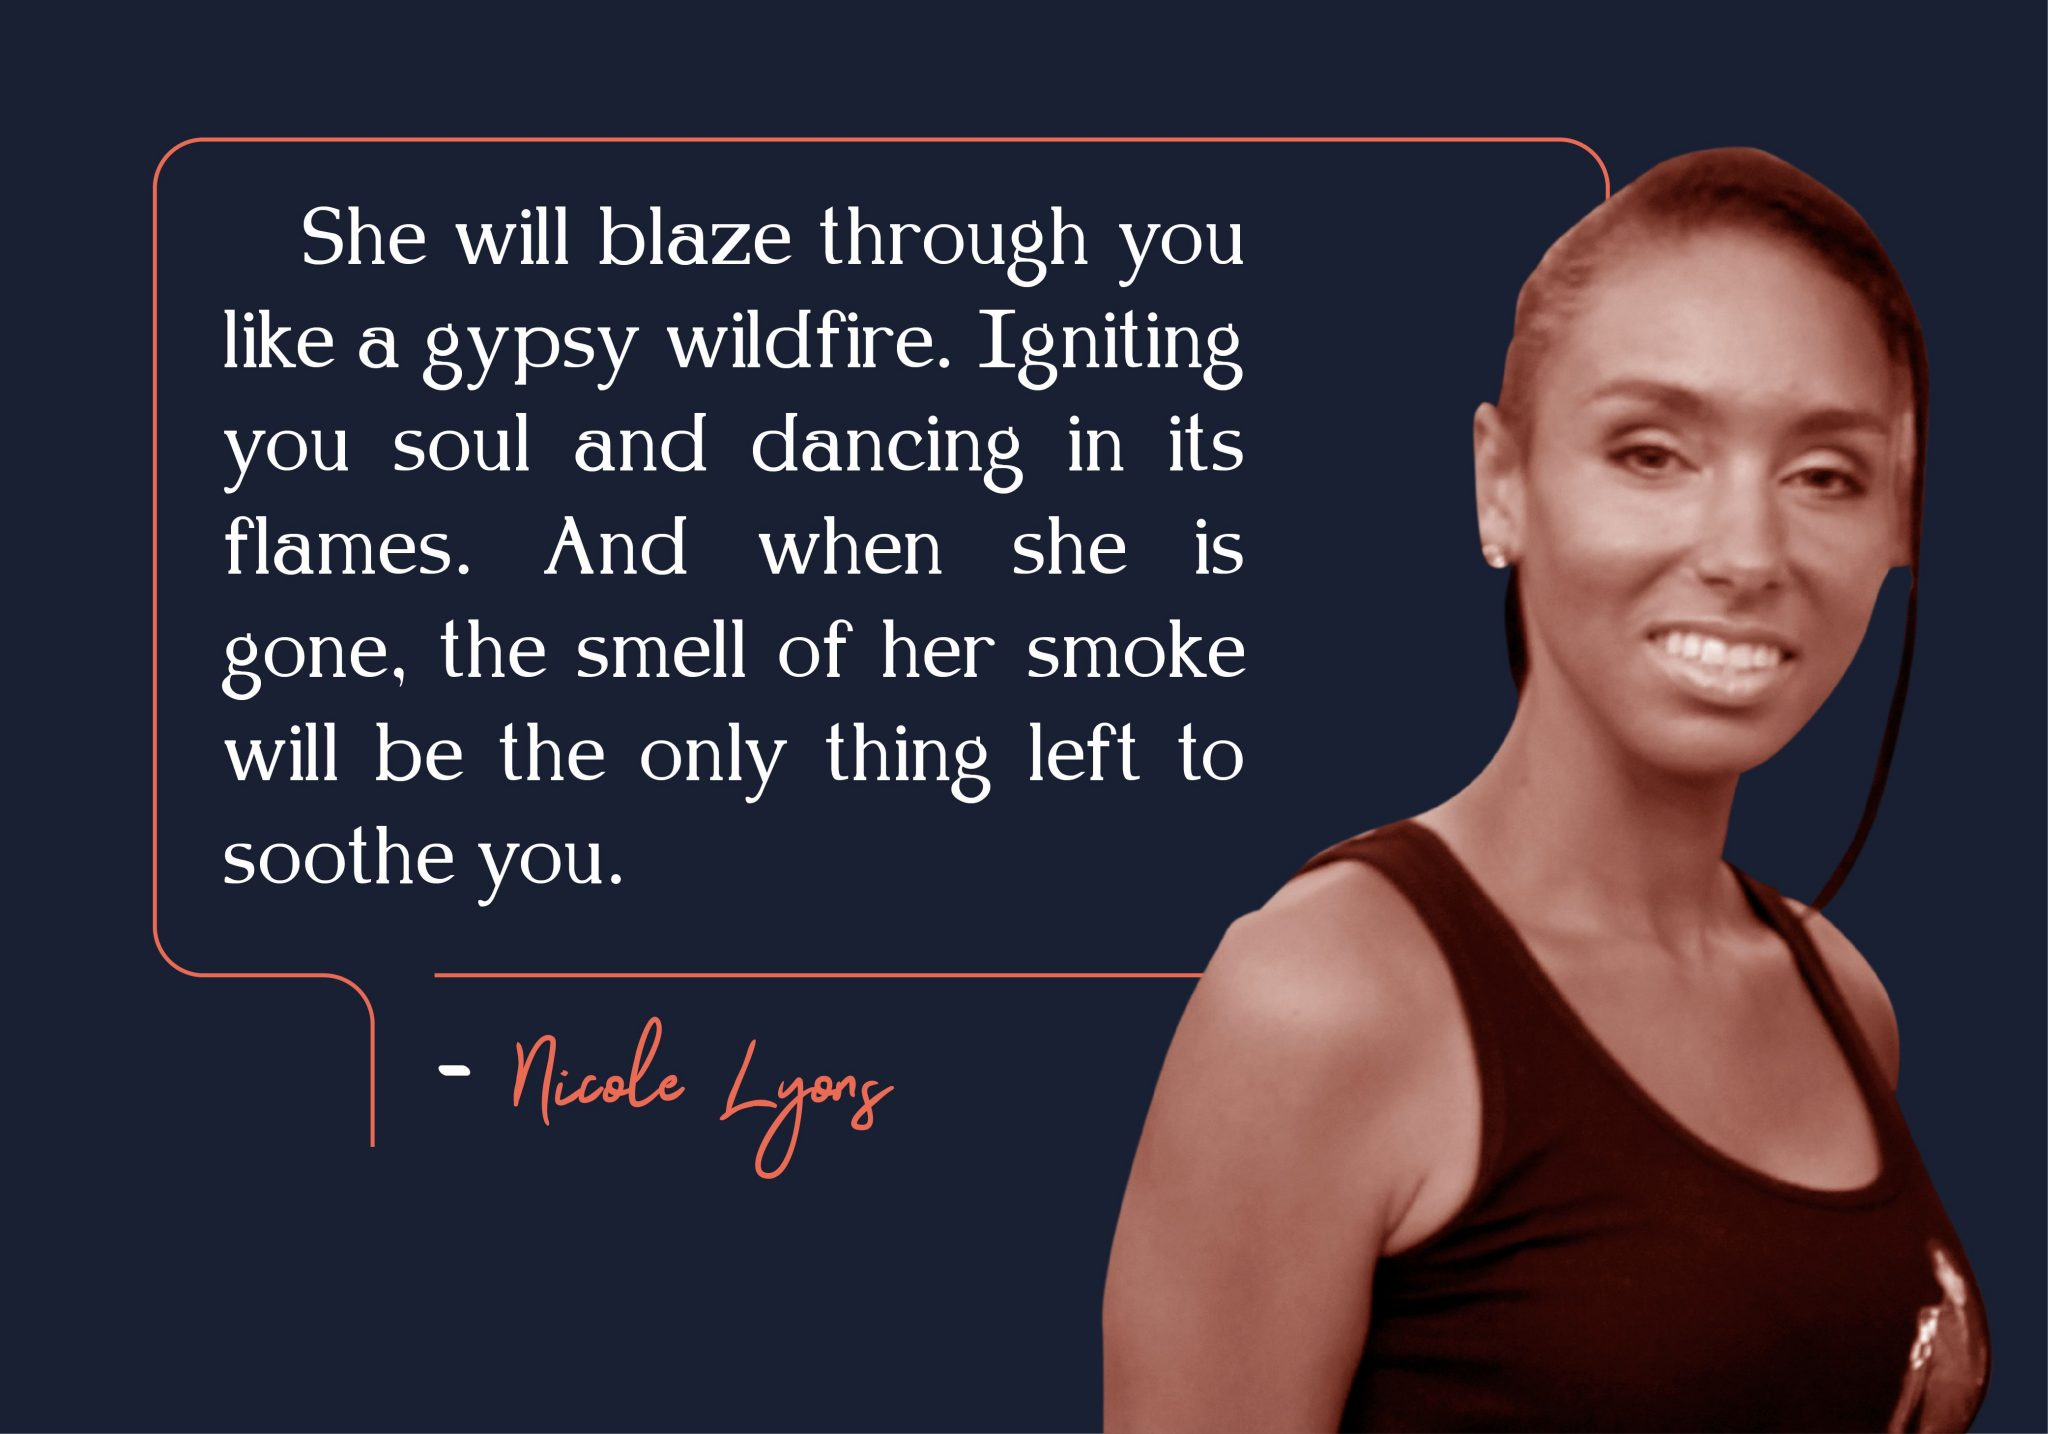 She will blaze through you like a gypsy wildfire. Igniting your soul and dancing in its flames. And when she is gone, the smell of her smoke will be the only thing left to soothe you. – Nicole Lyong [2048X1434]